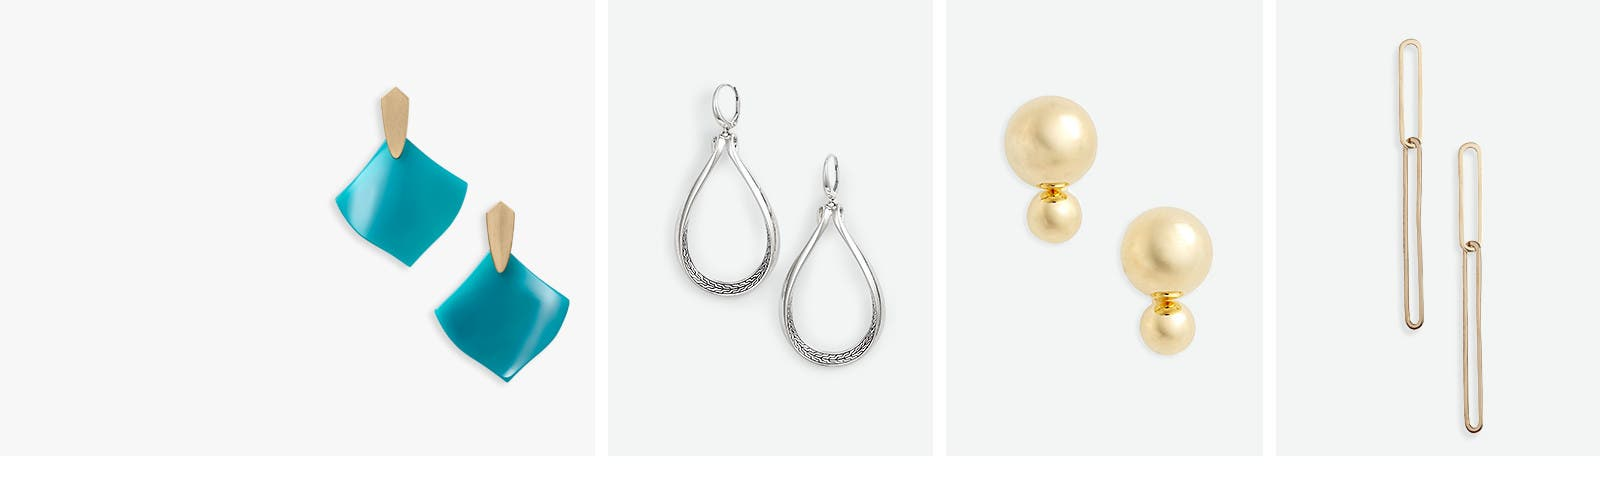 Women's earring trends.